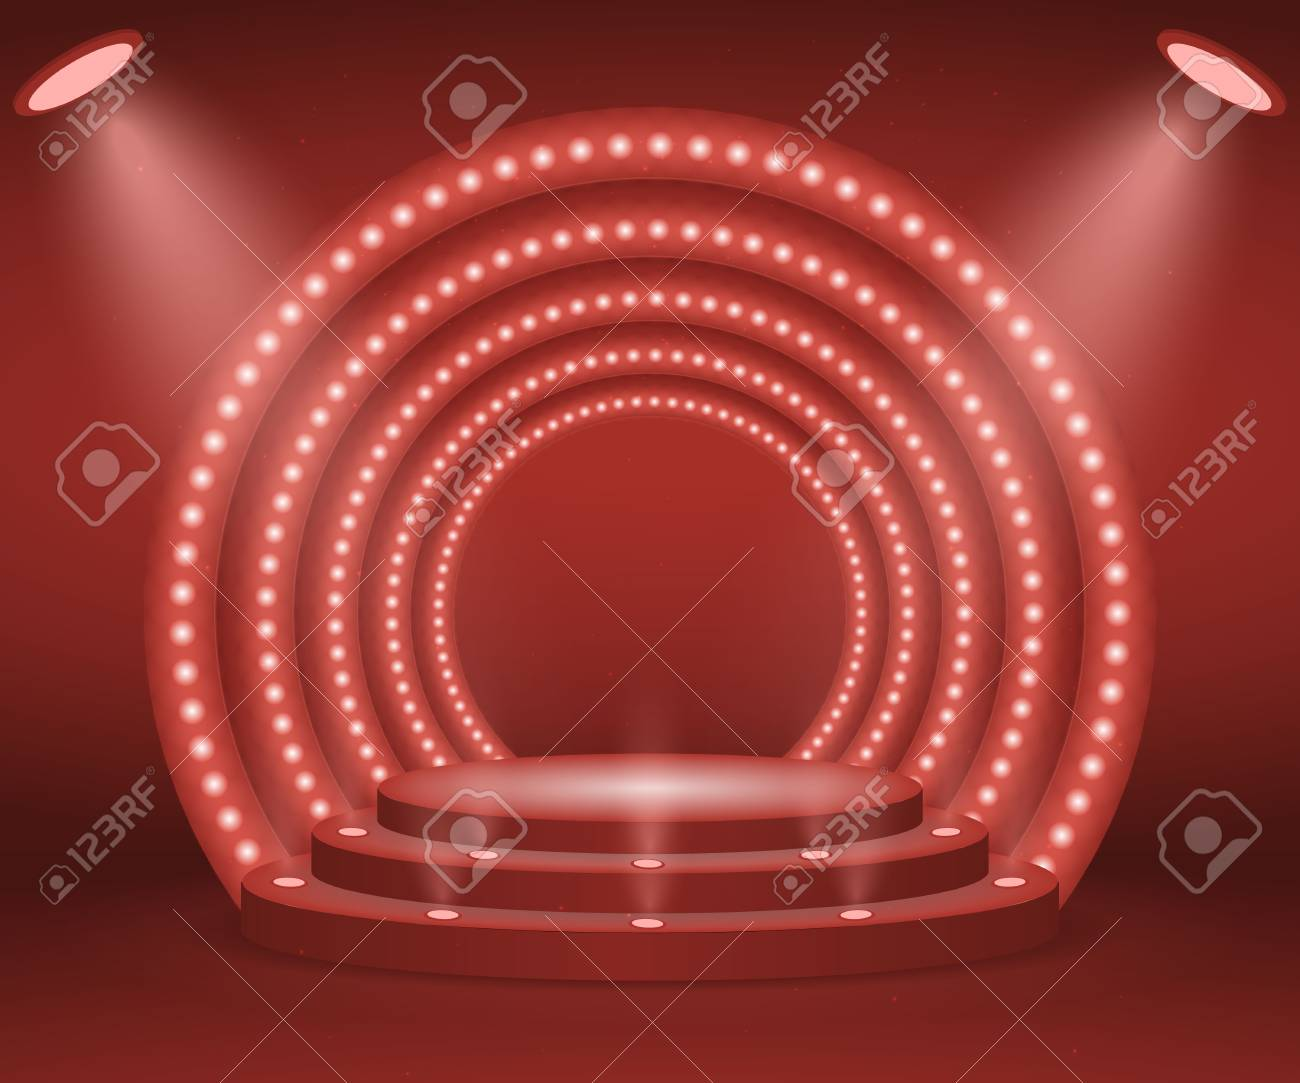 Stage with lights for awards ceremony. Illuminated Round Podium. Pedestal. - 102495386